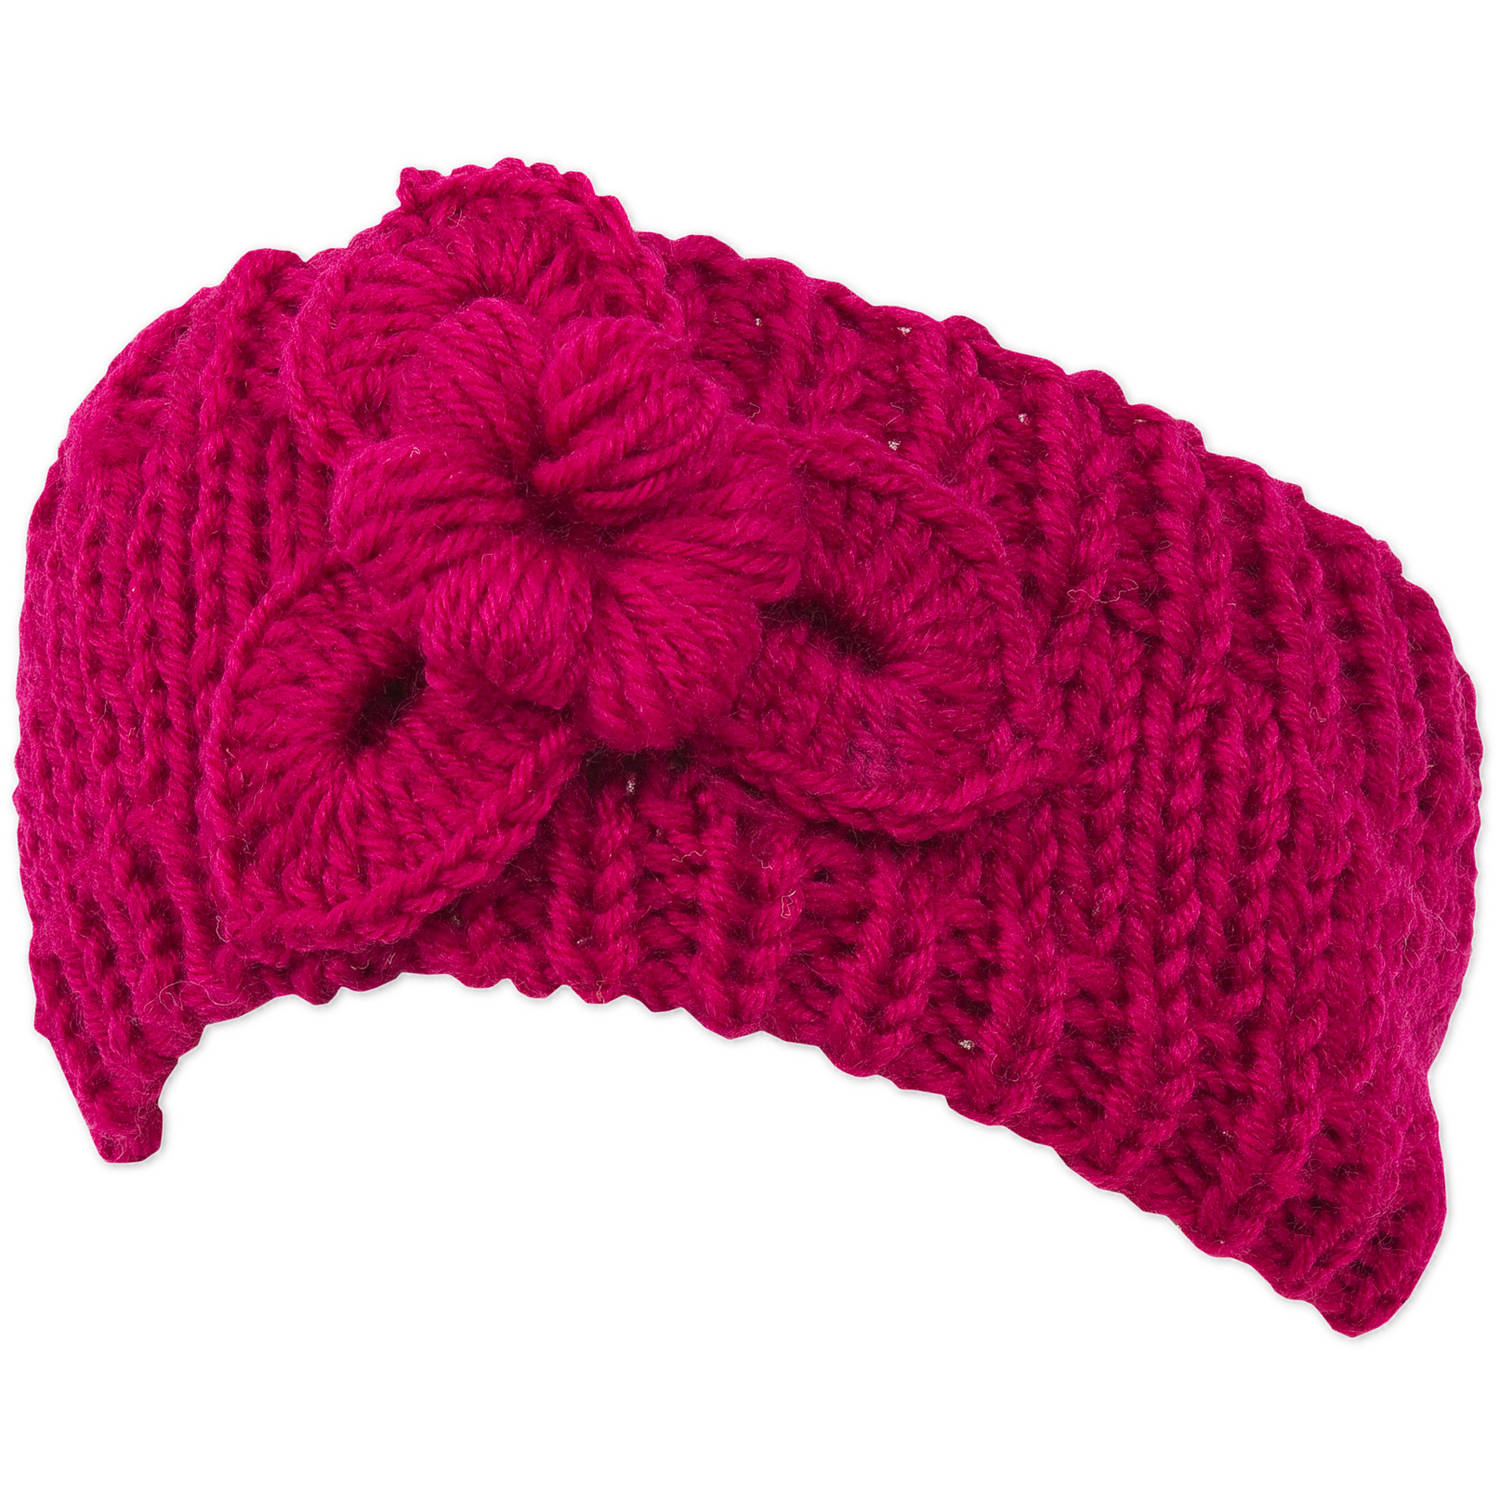 Magid Knit Headwrap, with Flower Applique